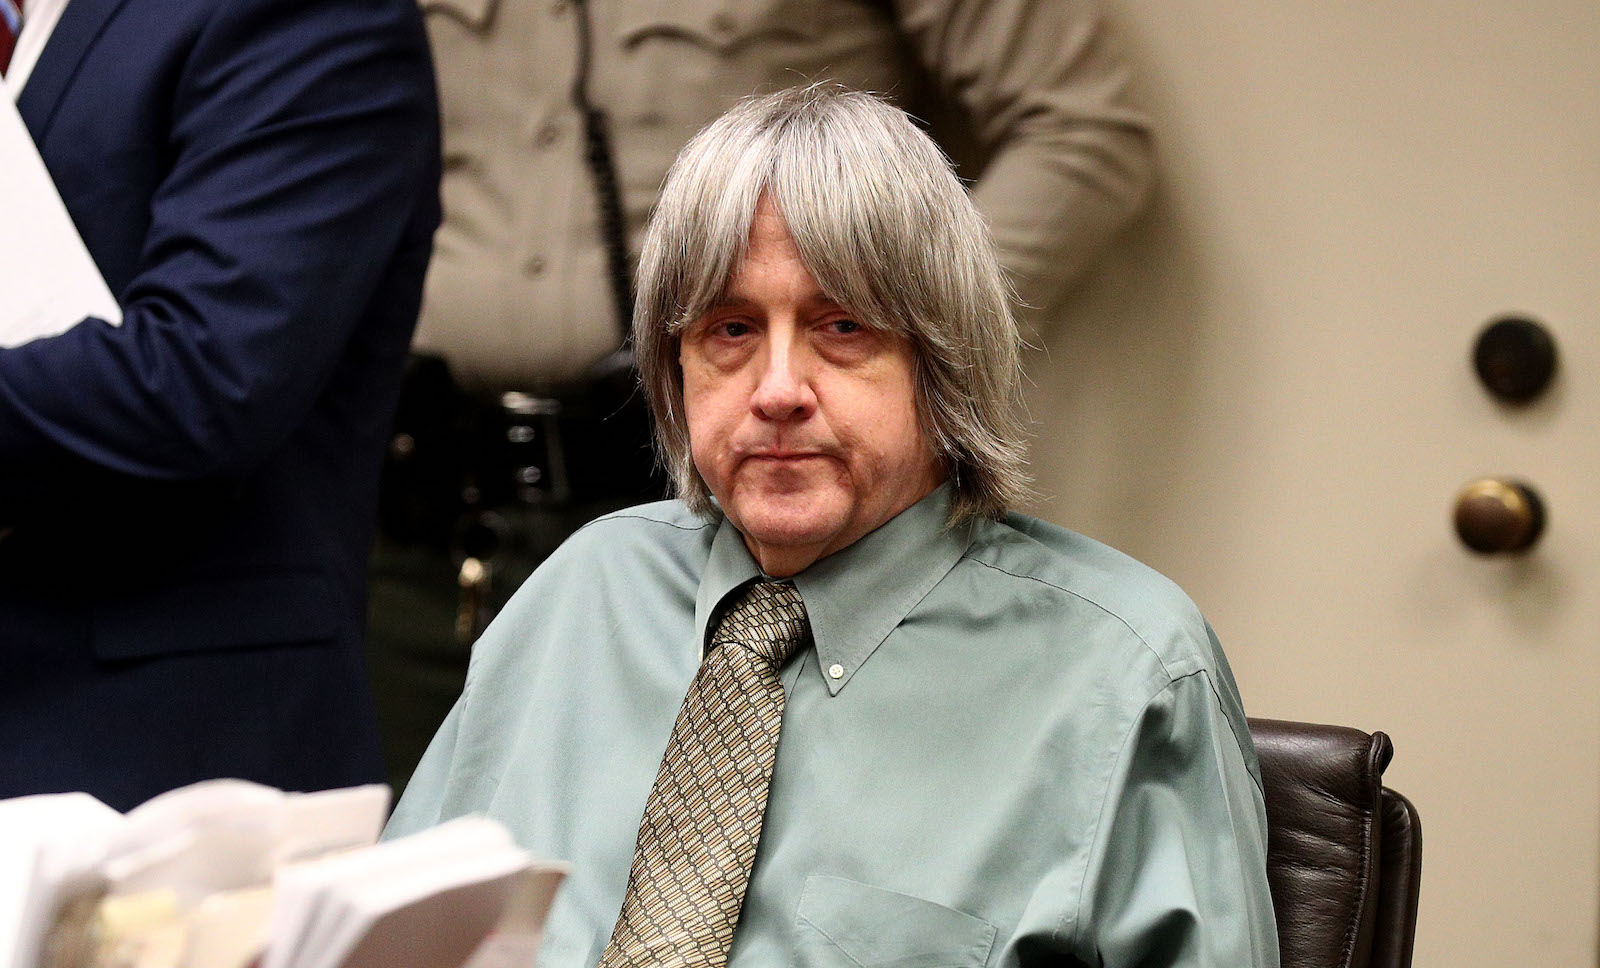 David Turpin Pleads From Jail I Hope My Kids Can Forgive Me